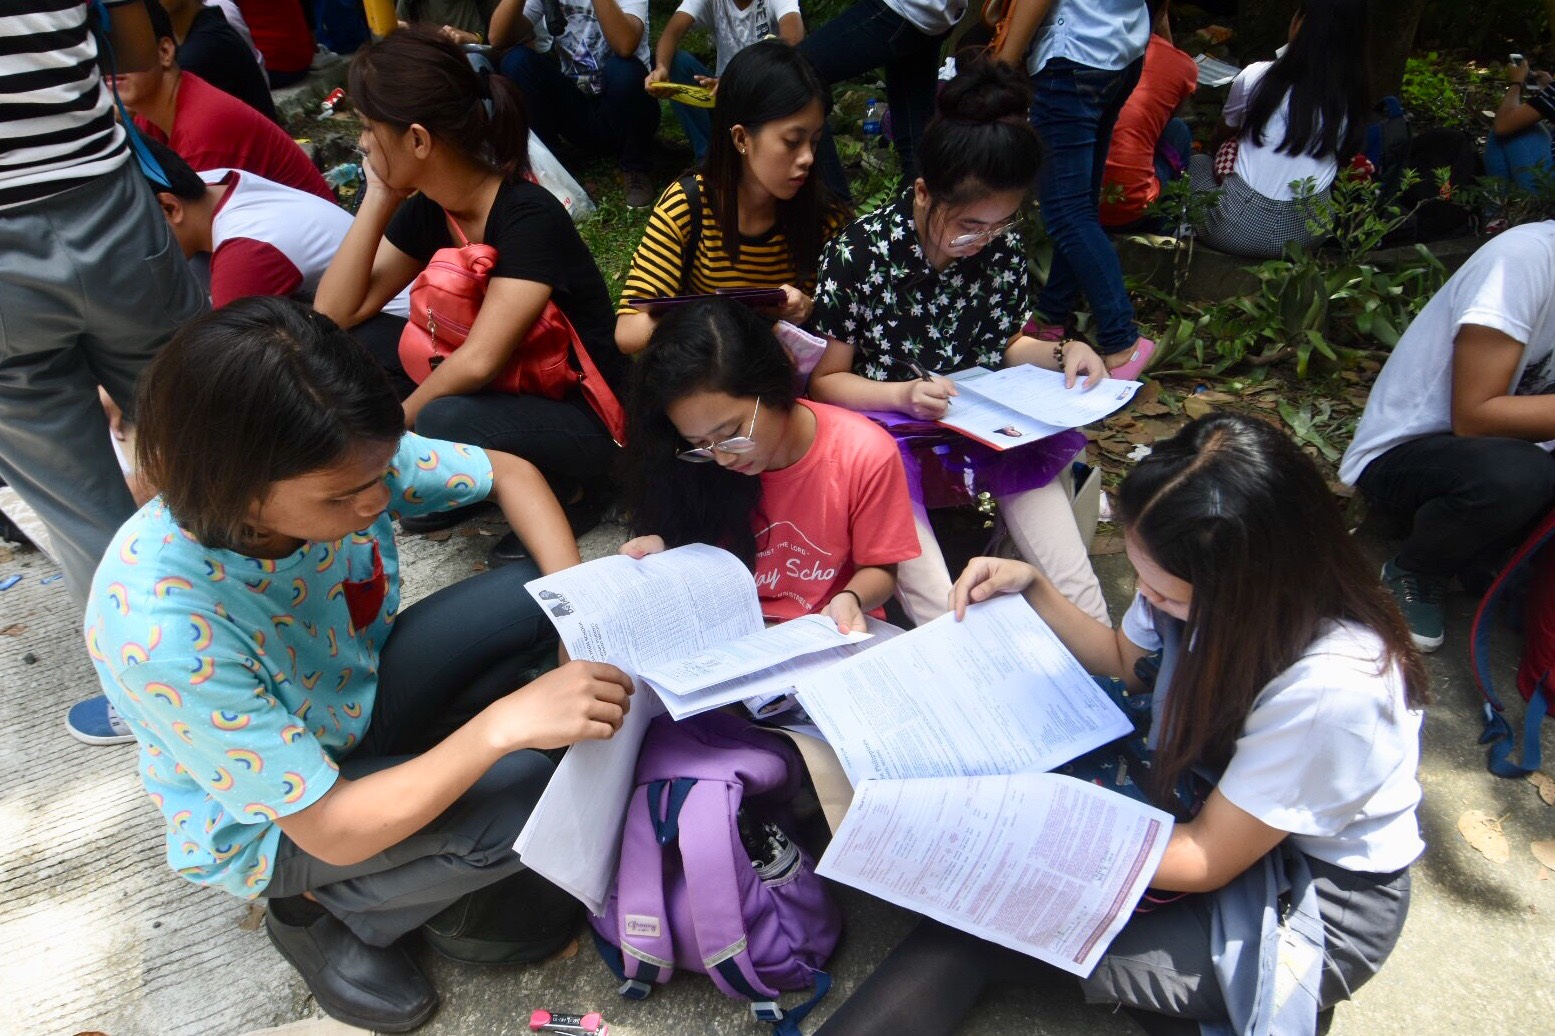 APPLICANTS. Aspiring applicants during the last day of submission of UPCAT Application in UP Diliman. Photo by Angie de Silva